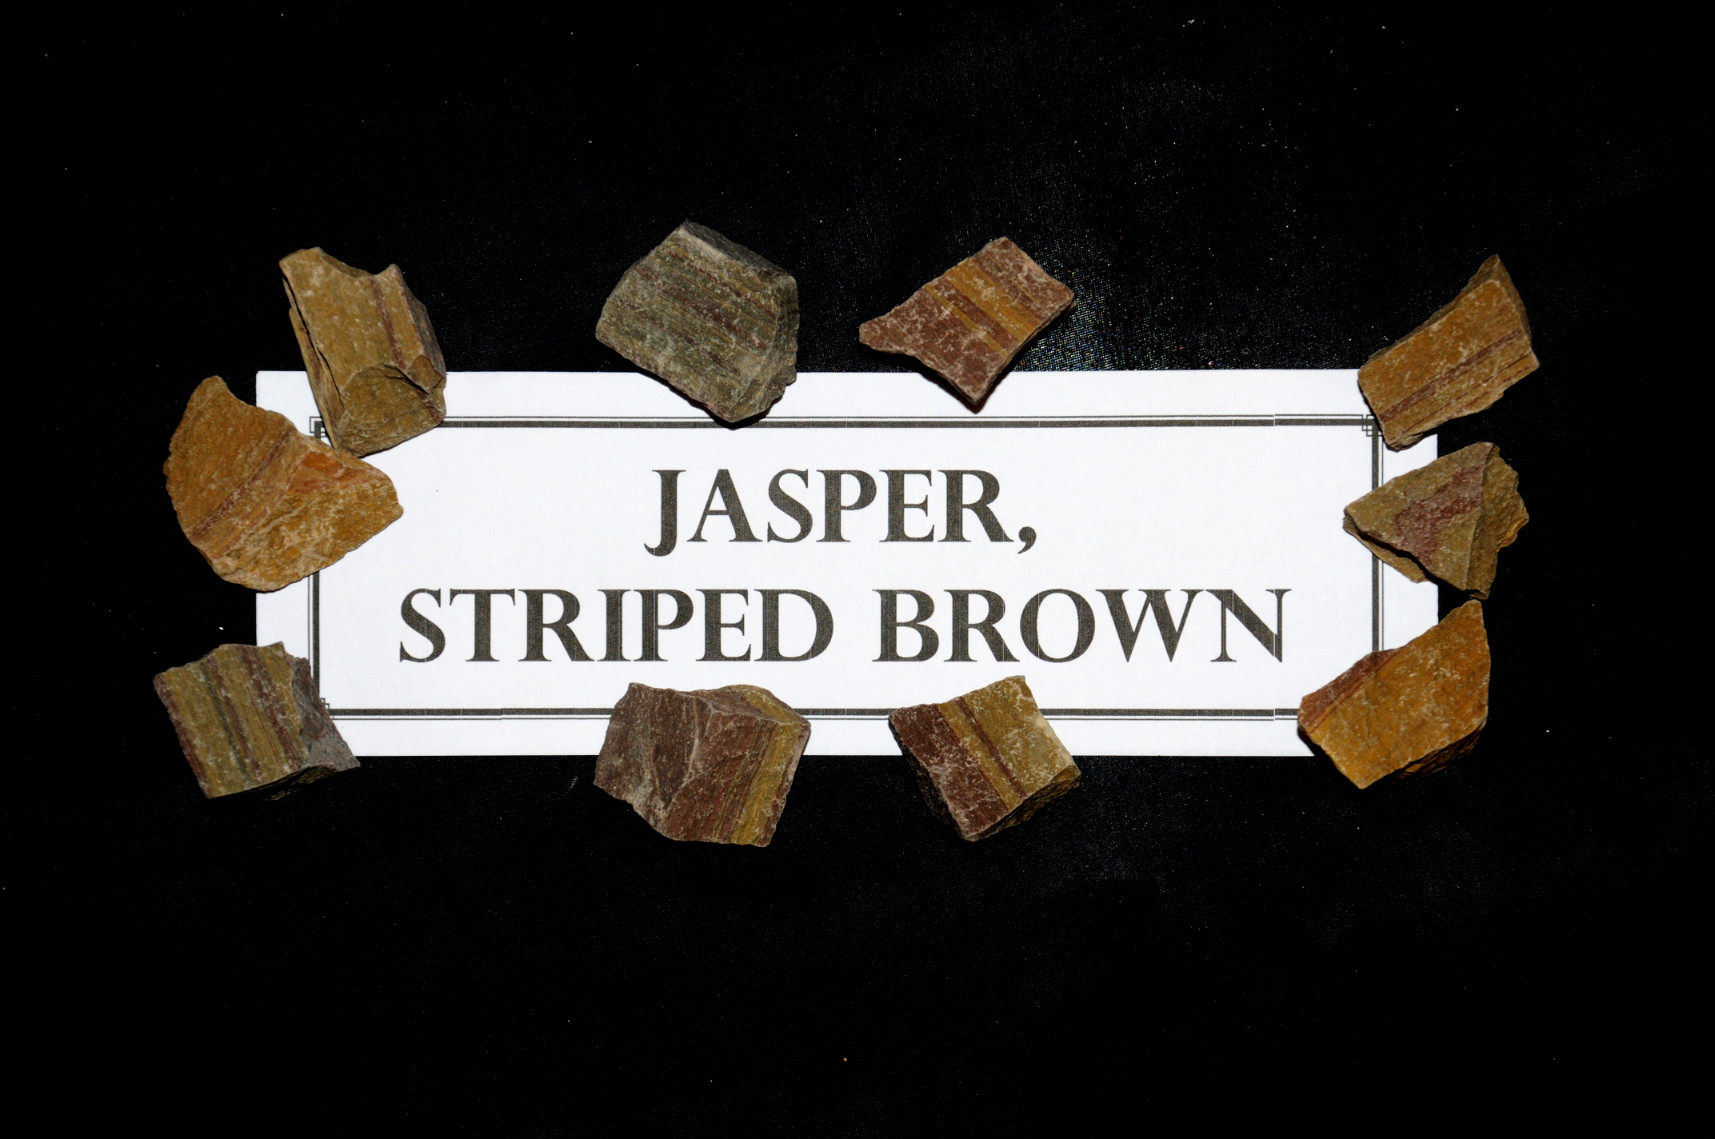 Jasper, Striped Brown